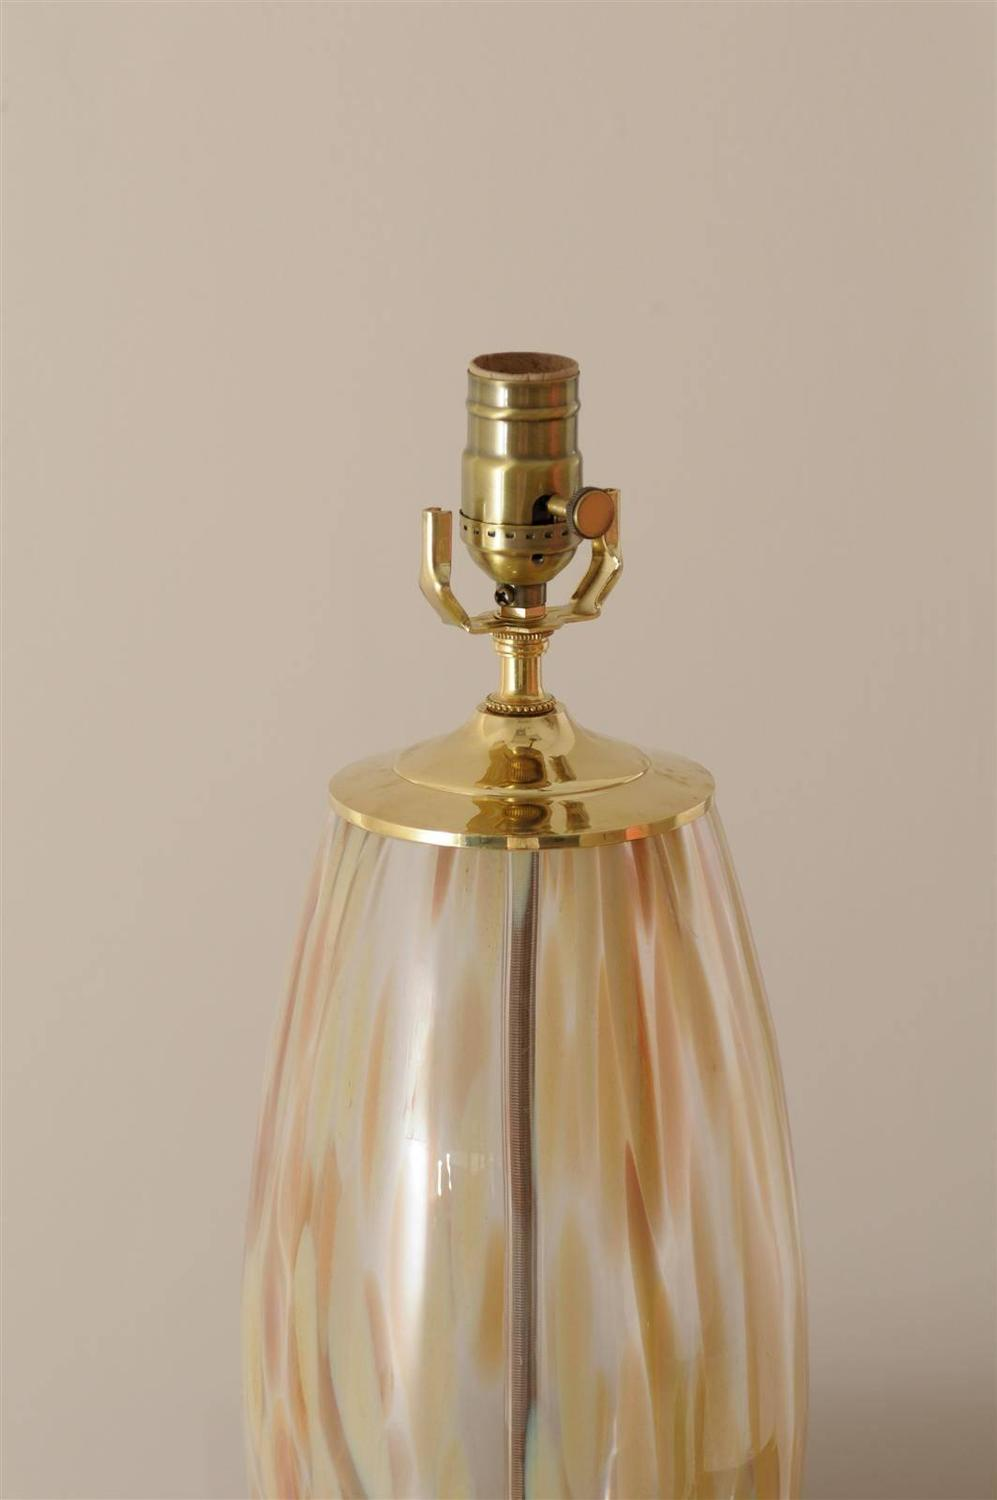 Stunning Pair of Blown Murano Lamps with Brass and Lucite Accents For Sale at 1stdibs